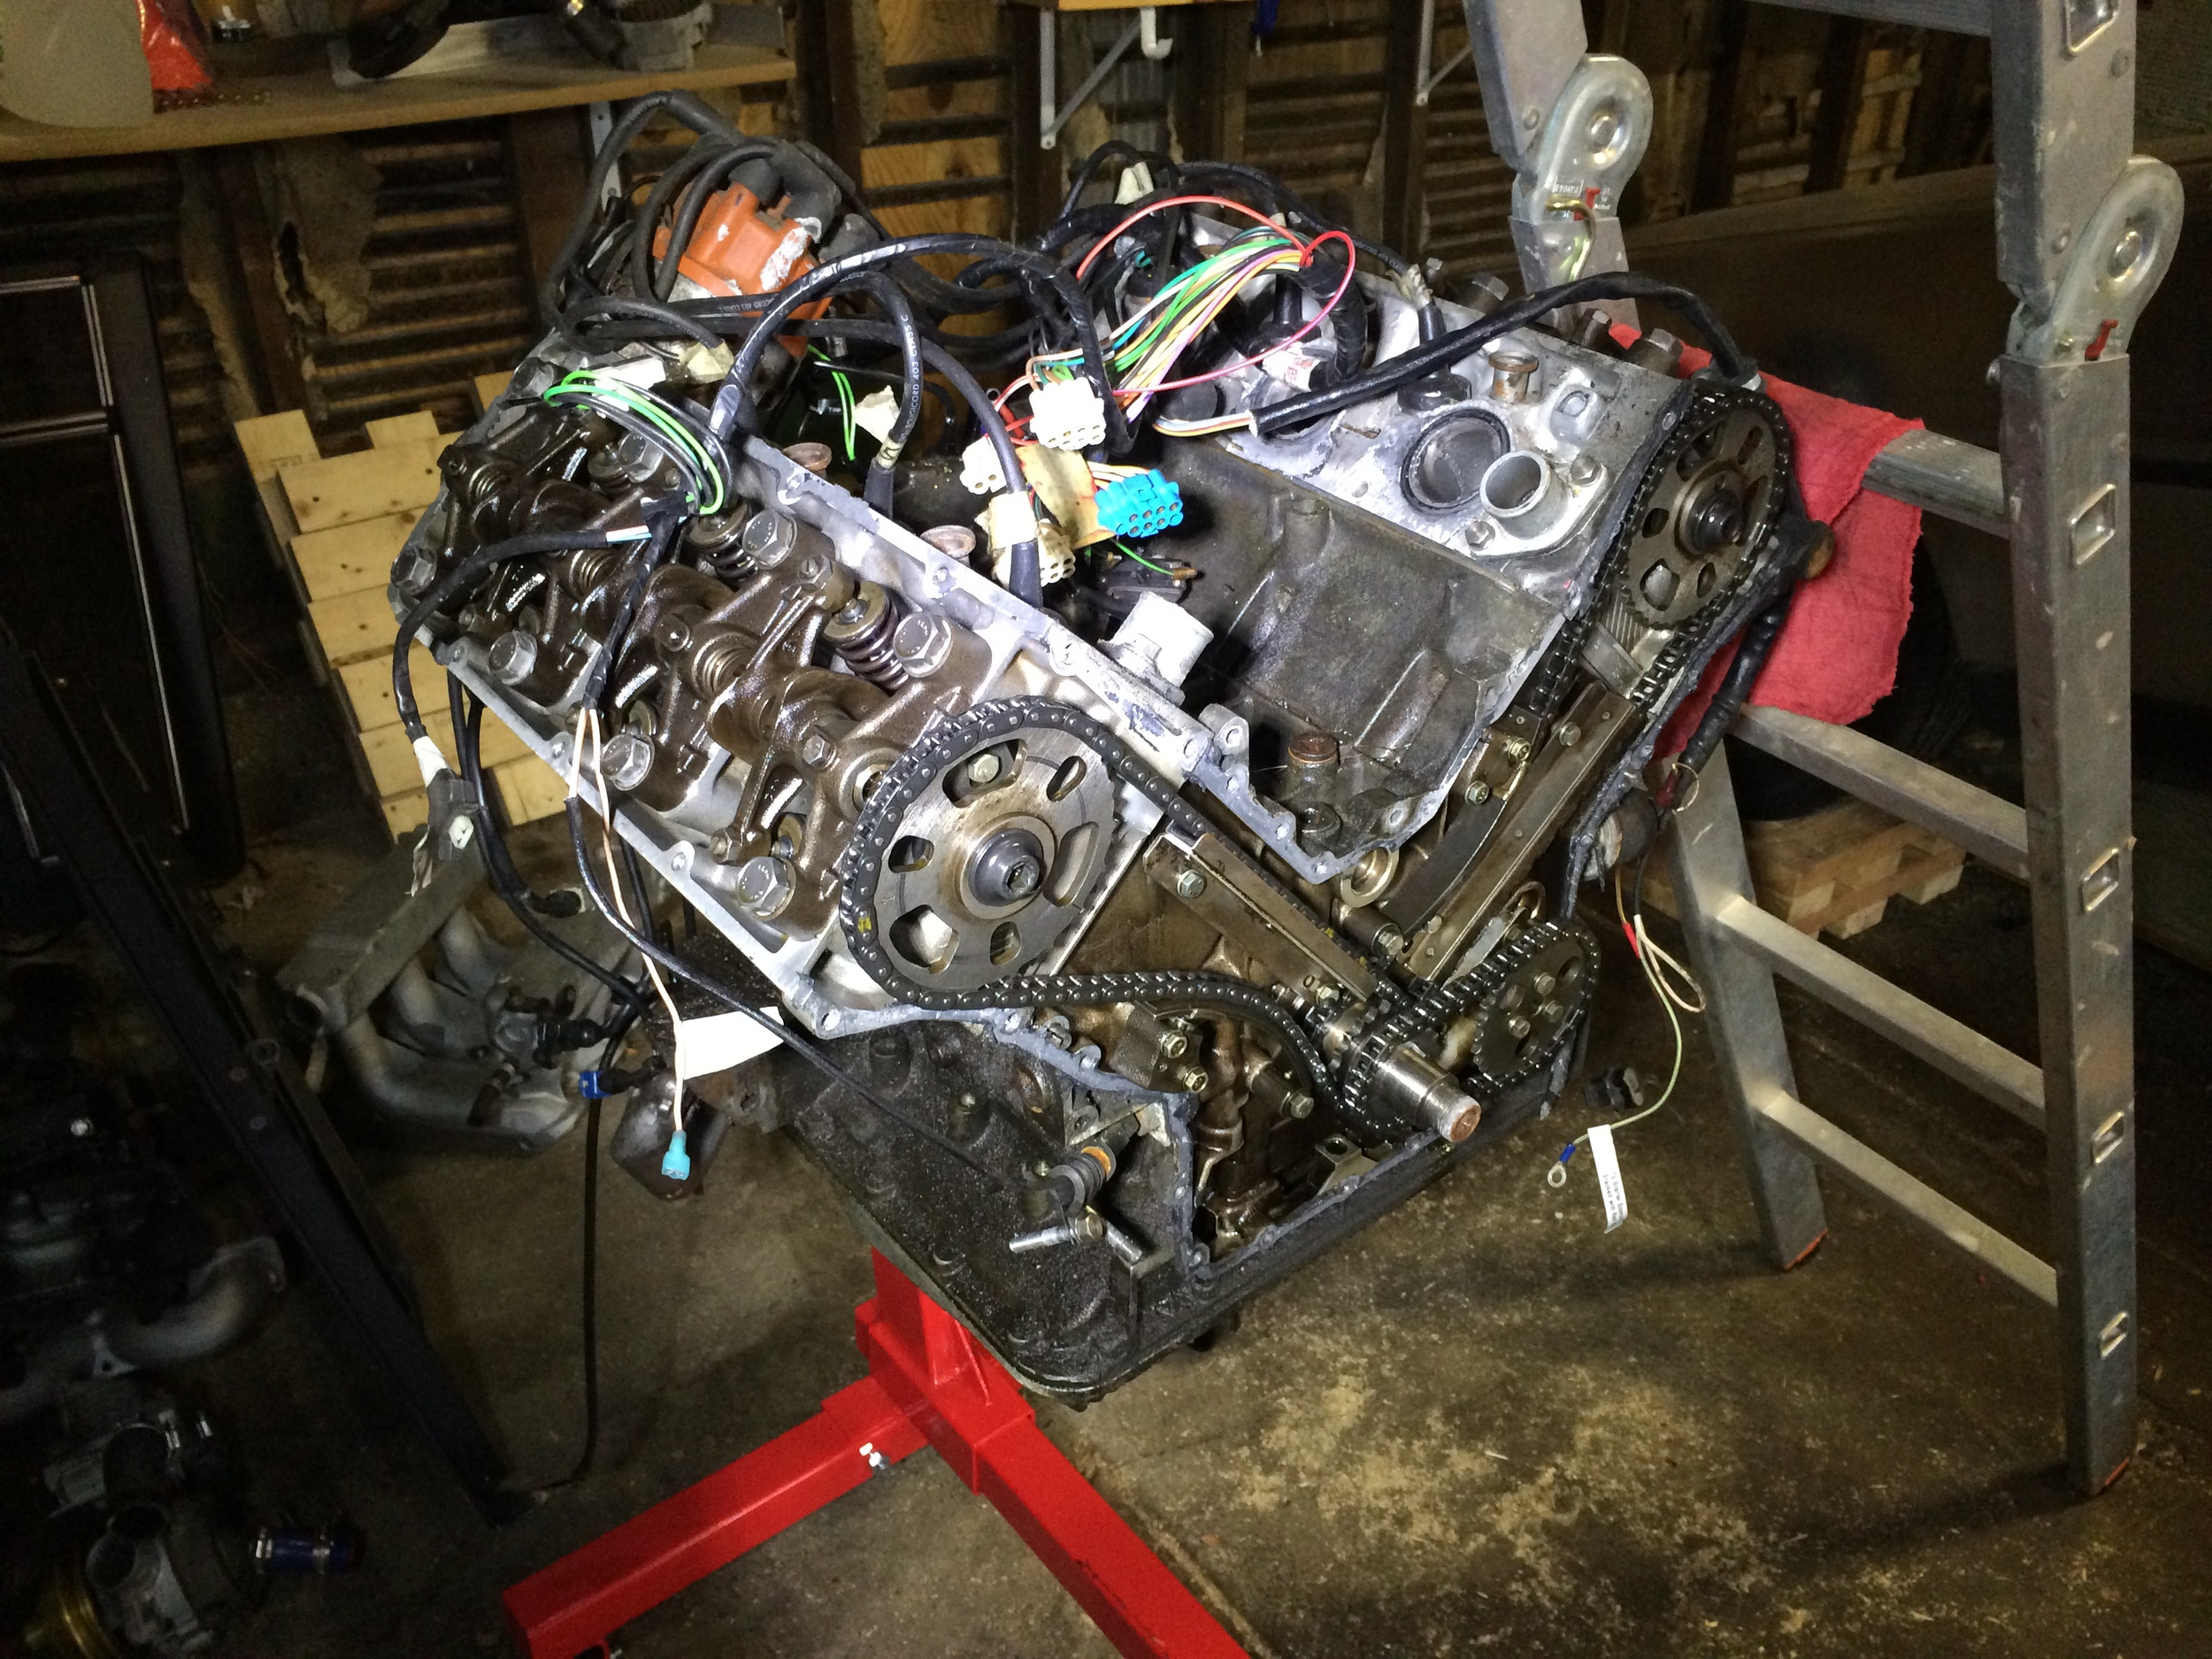 Another view showing the timing cover and valve covers removed